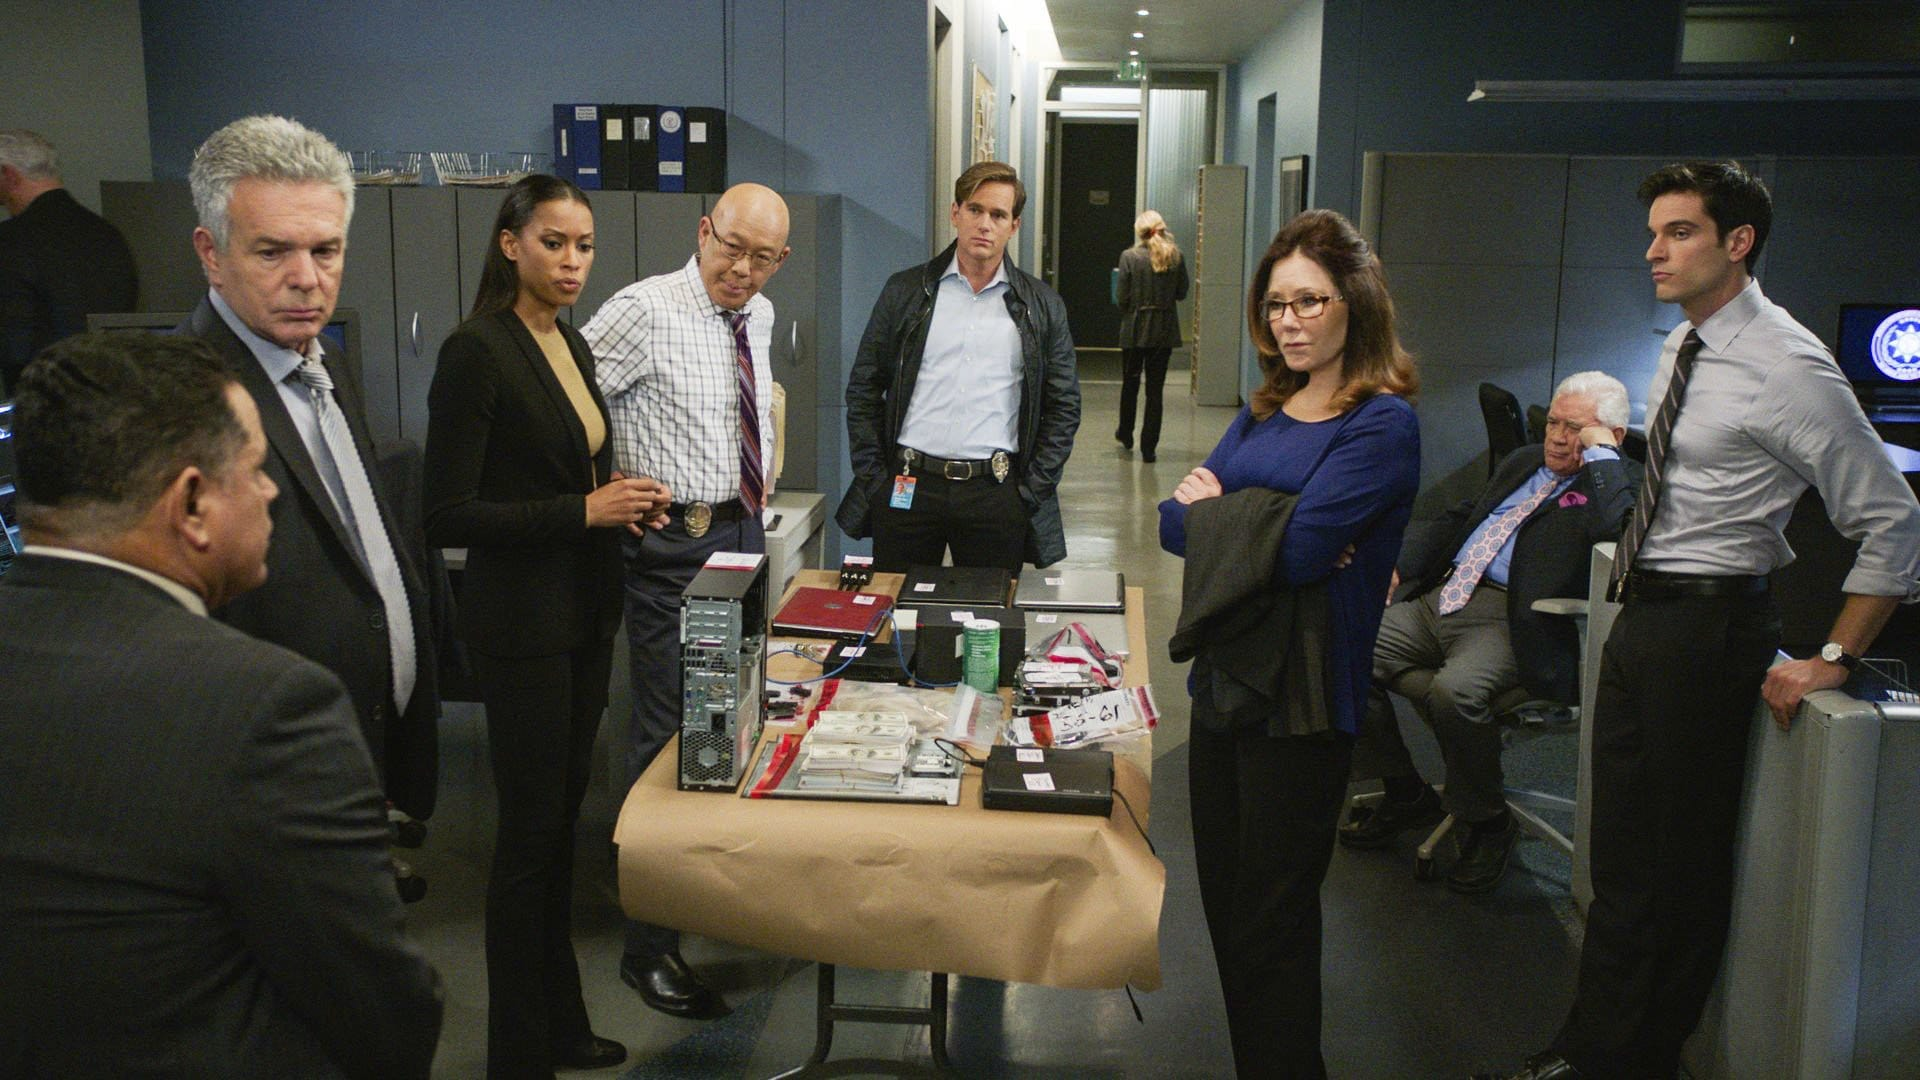 MAJOR CRIMES saison 5 image série télé